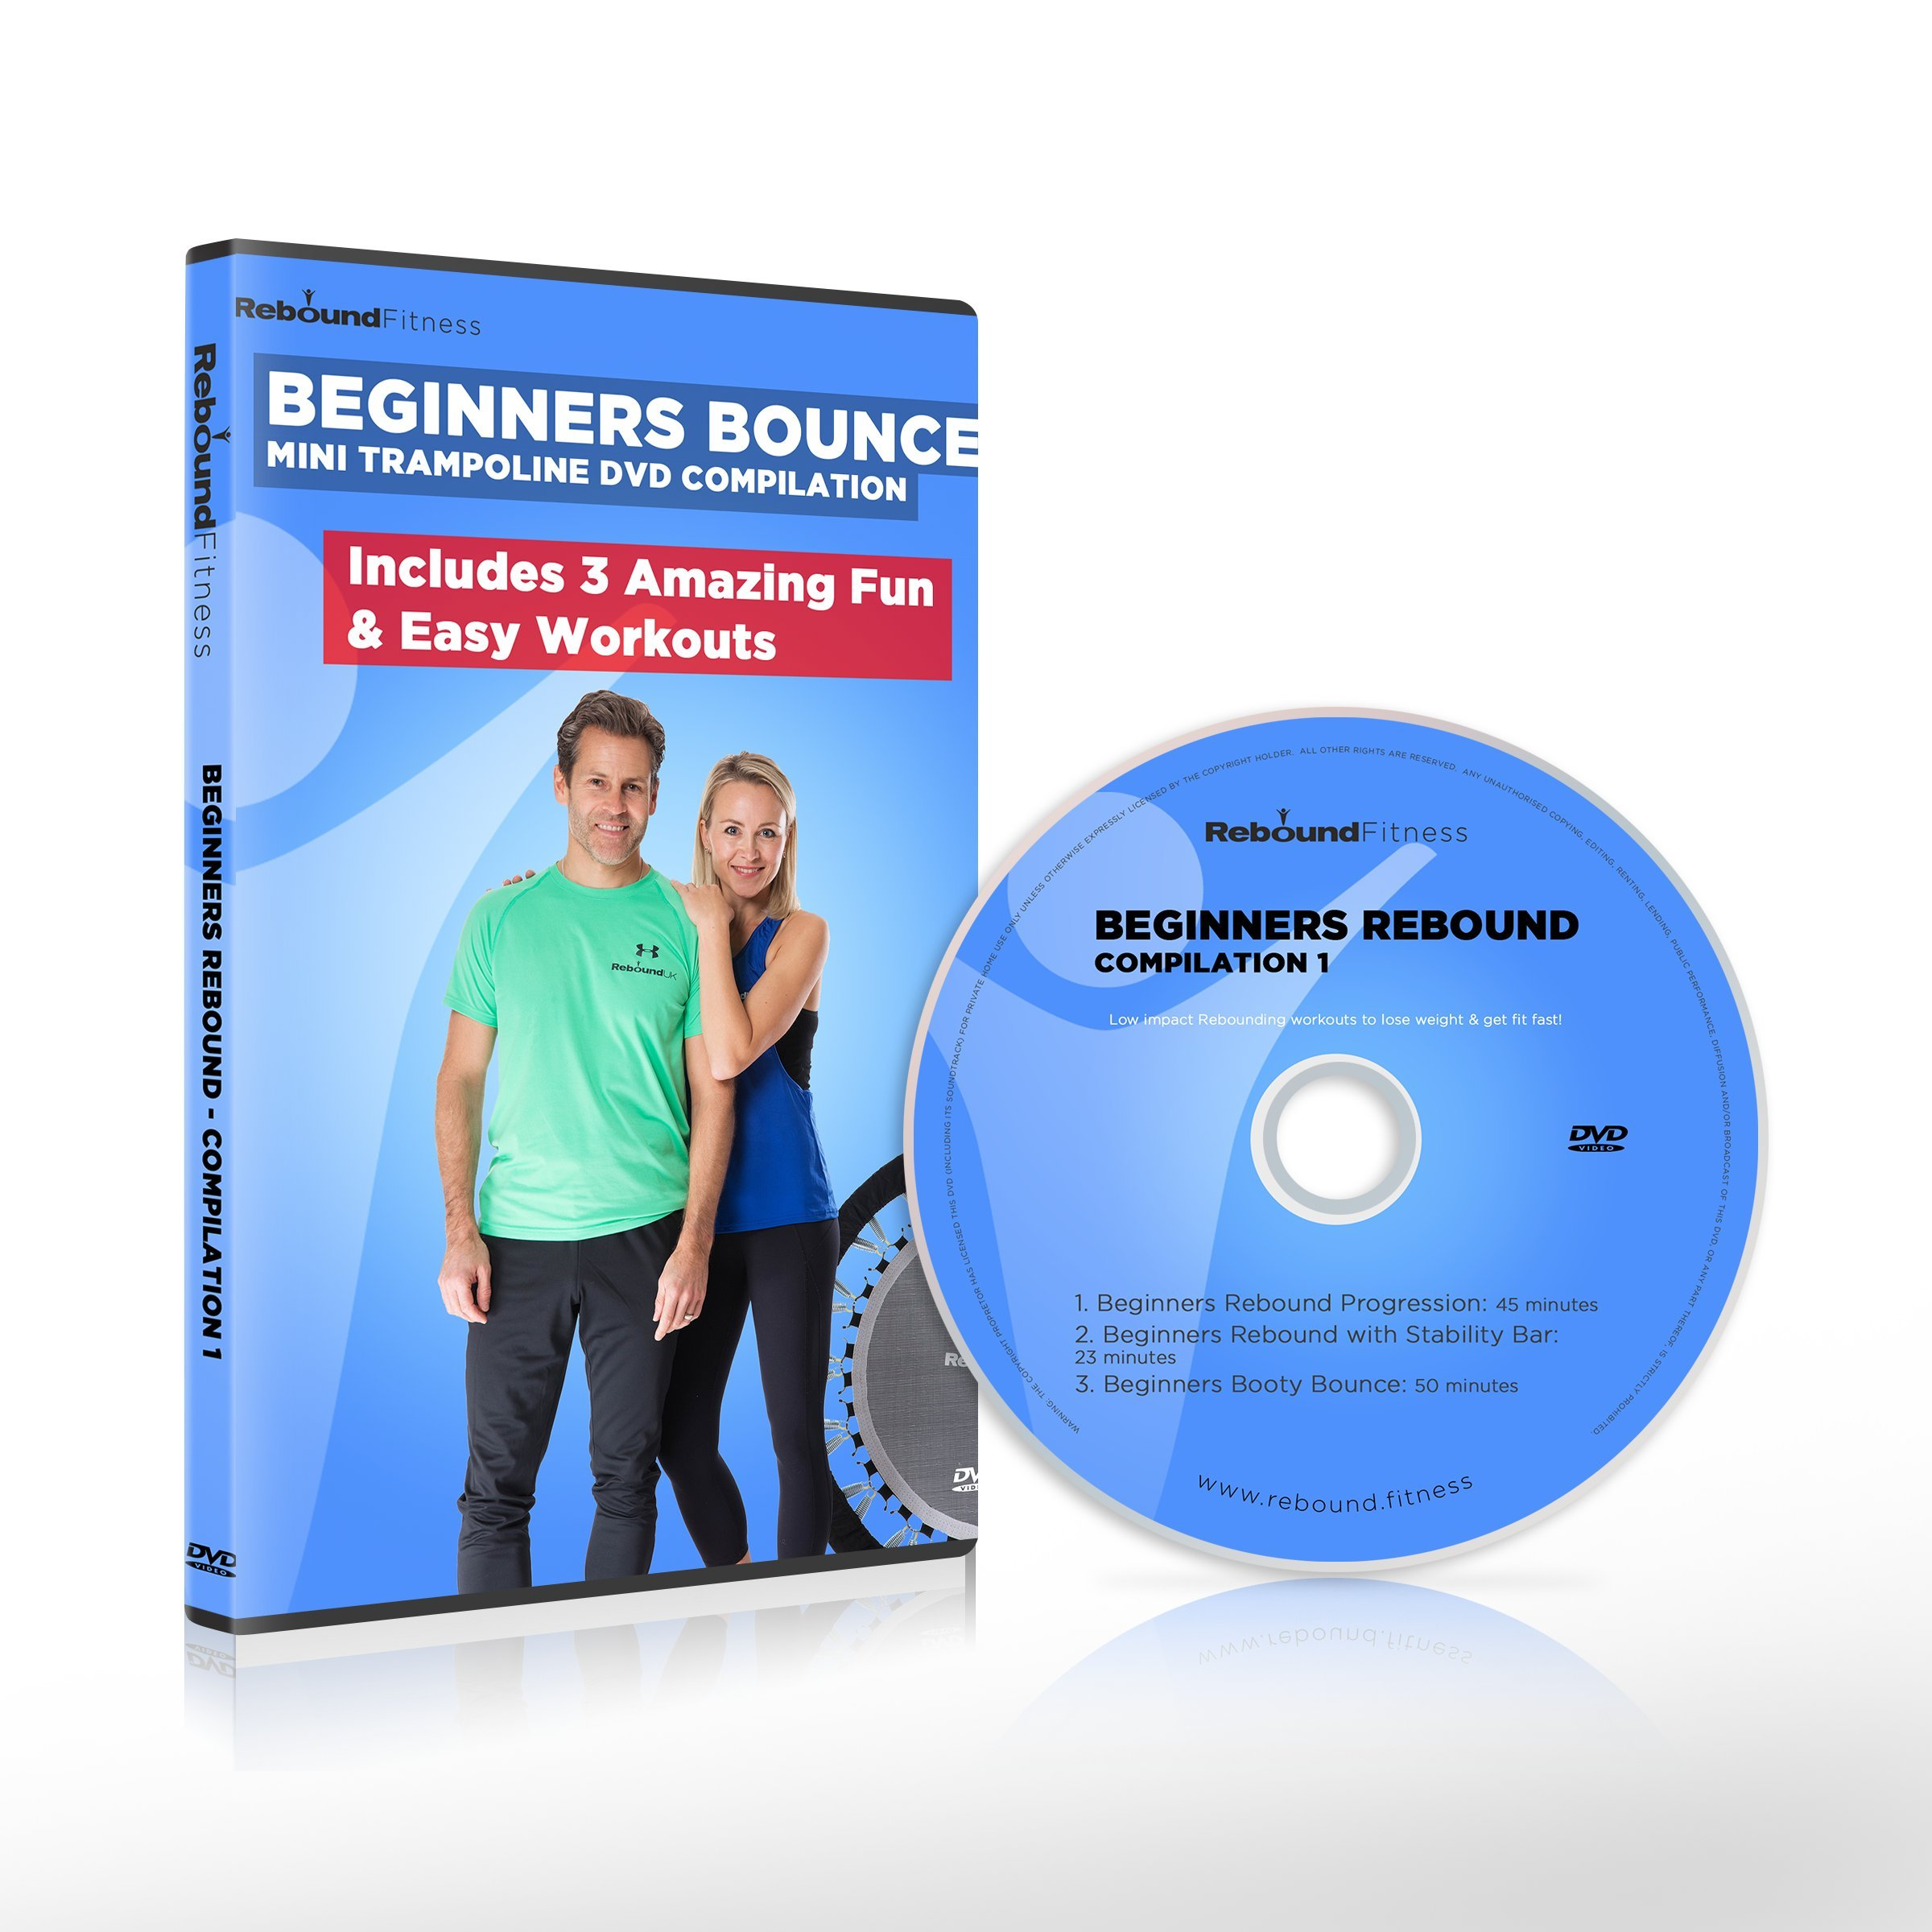 Beginners Bounce Mini Trampoline DVD Compilation. Includes 3 Amazing, Fun & Easy Rebounding Fitness Workouts to Help you Lose Weight & Tone Up! Claim 20% cash back on all our Rebounders. See below